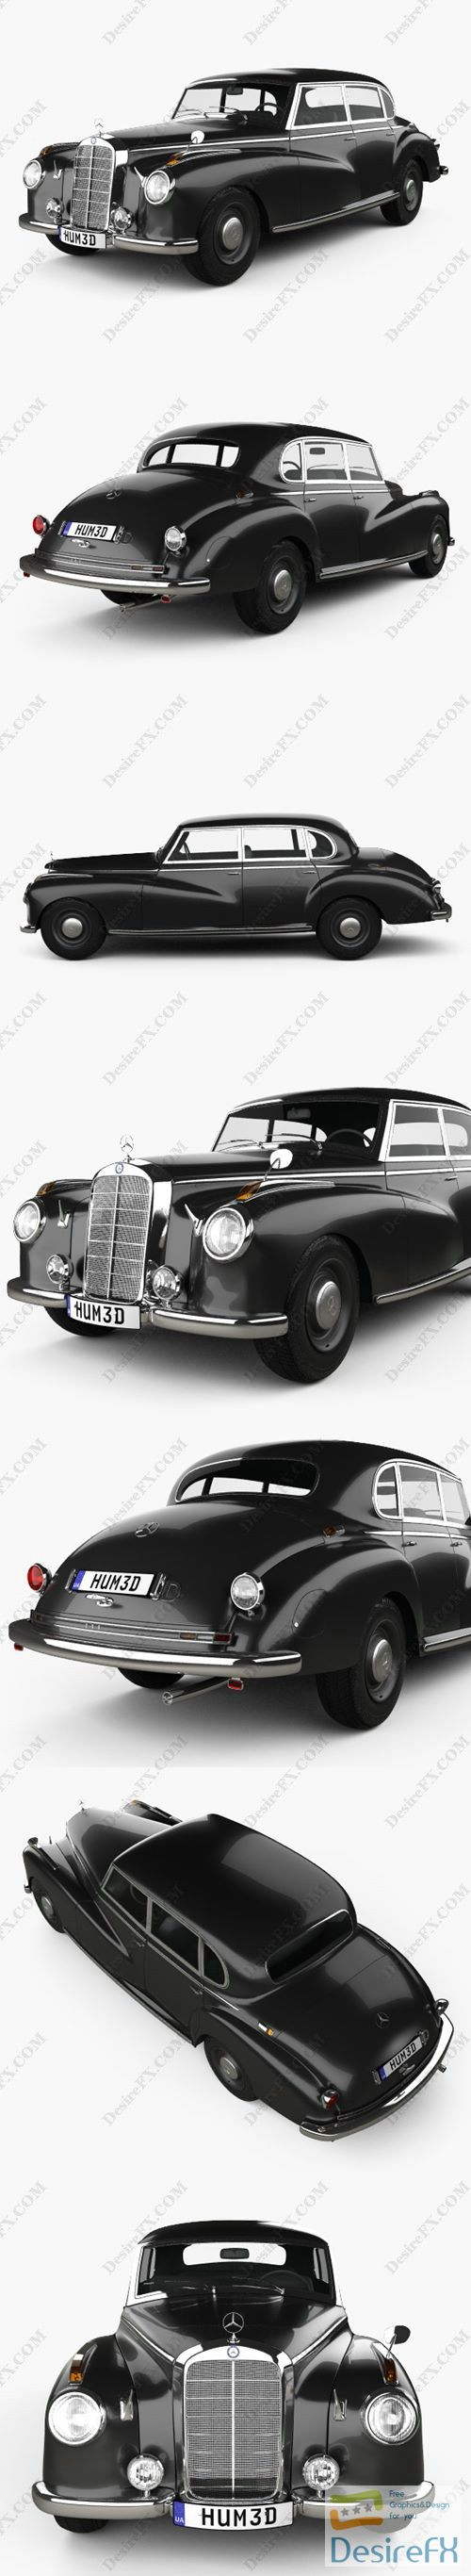 Mercedes-Benz 300 Limousine 1951 3D Model